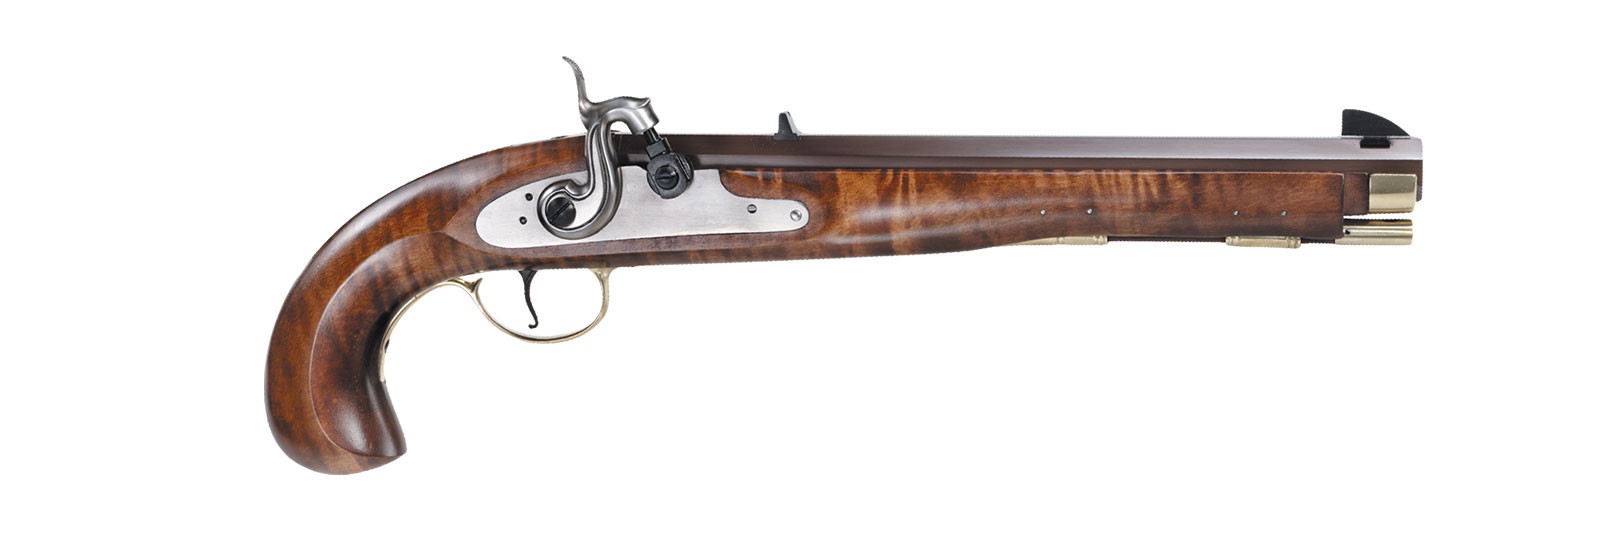 Kentucky Pistol